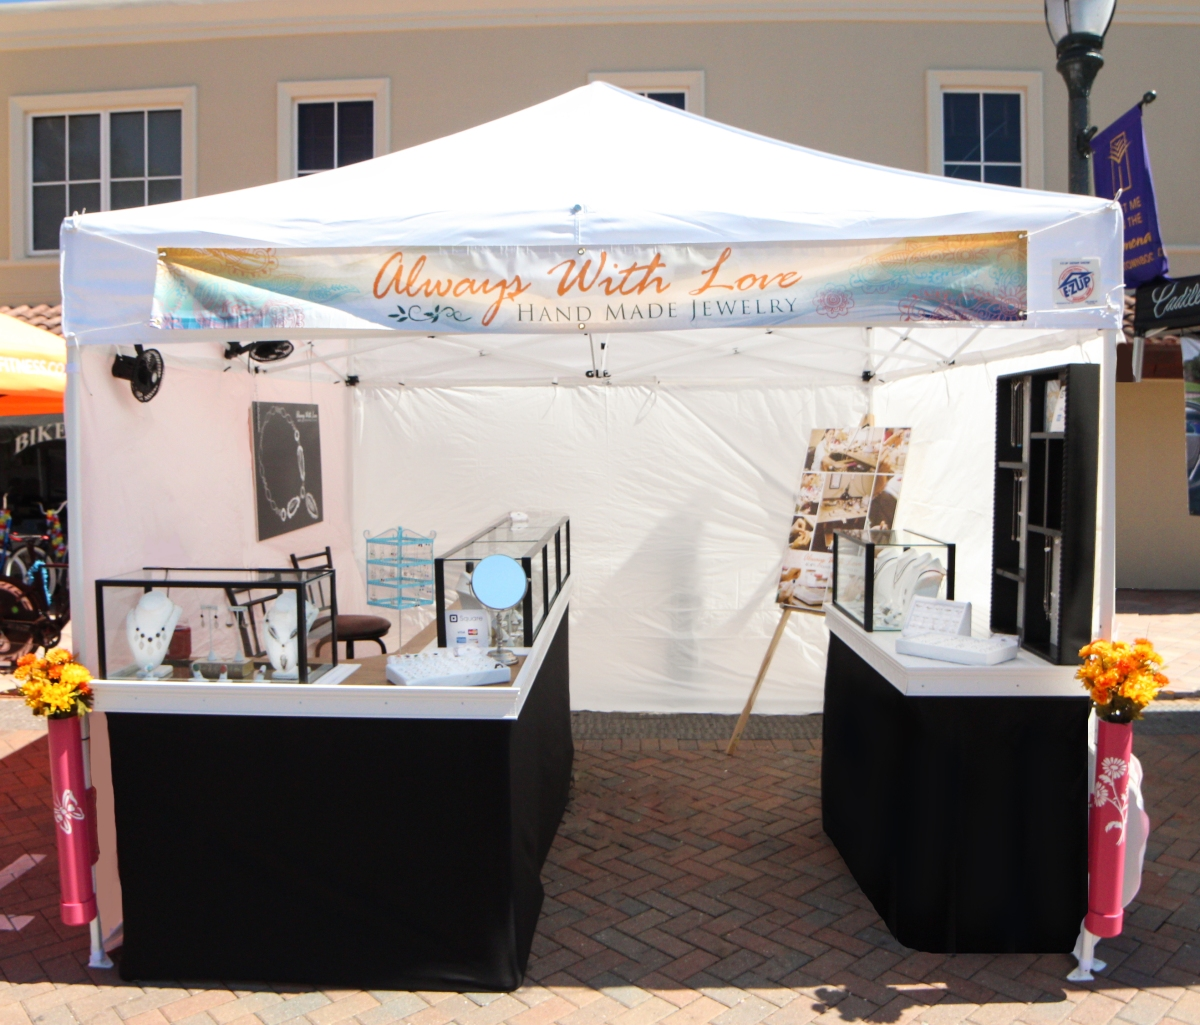 Sold jewelry booth for sale awl jewelry for Best sellers at craft fairs 2016